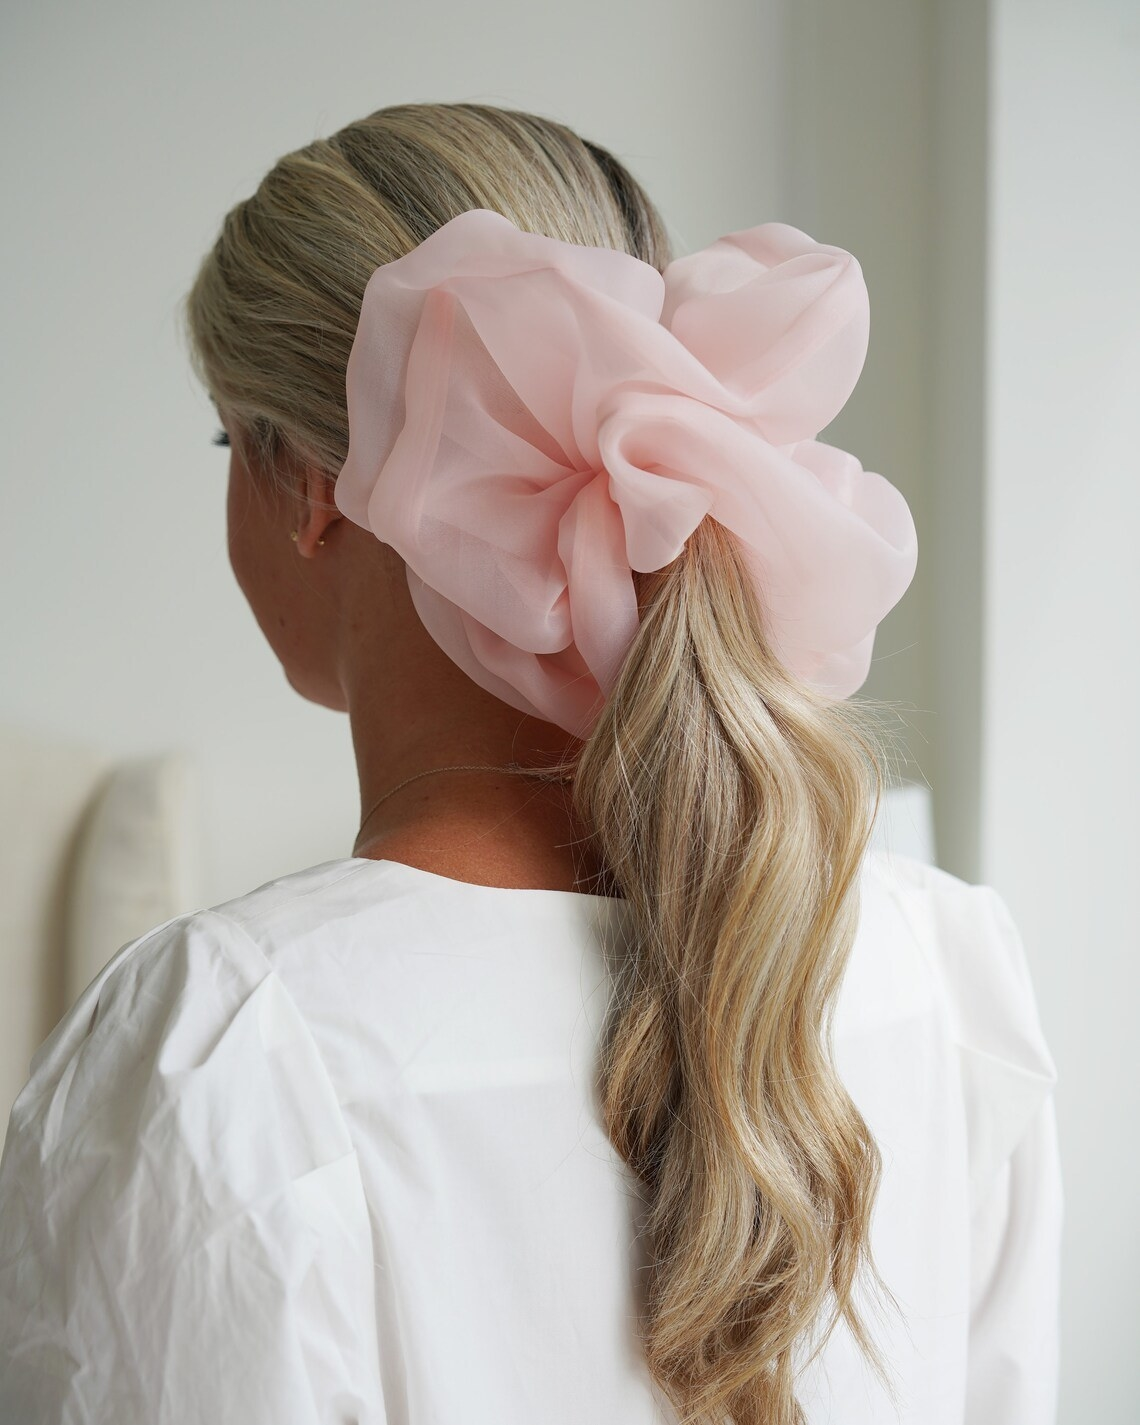 A person wearing their hair in a ponytail using an oversized scrunchie